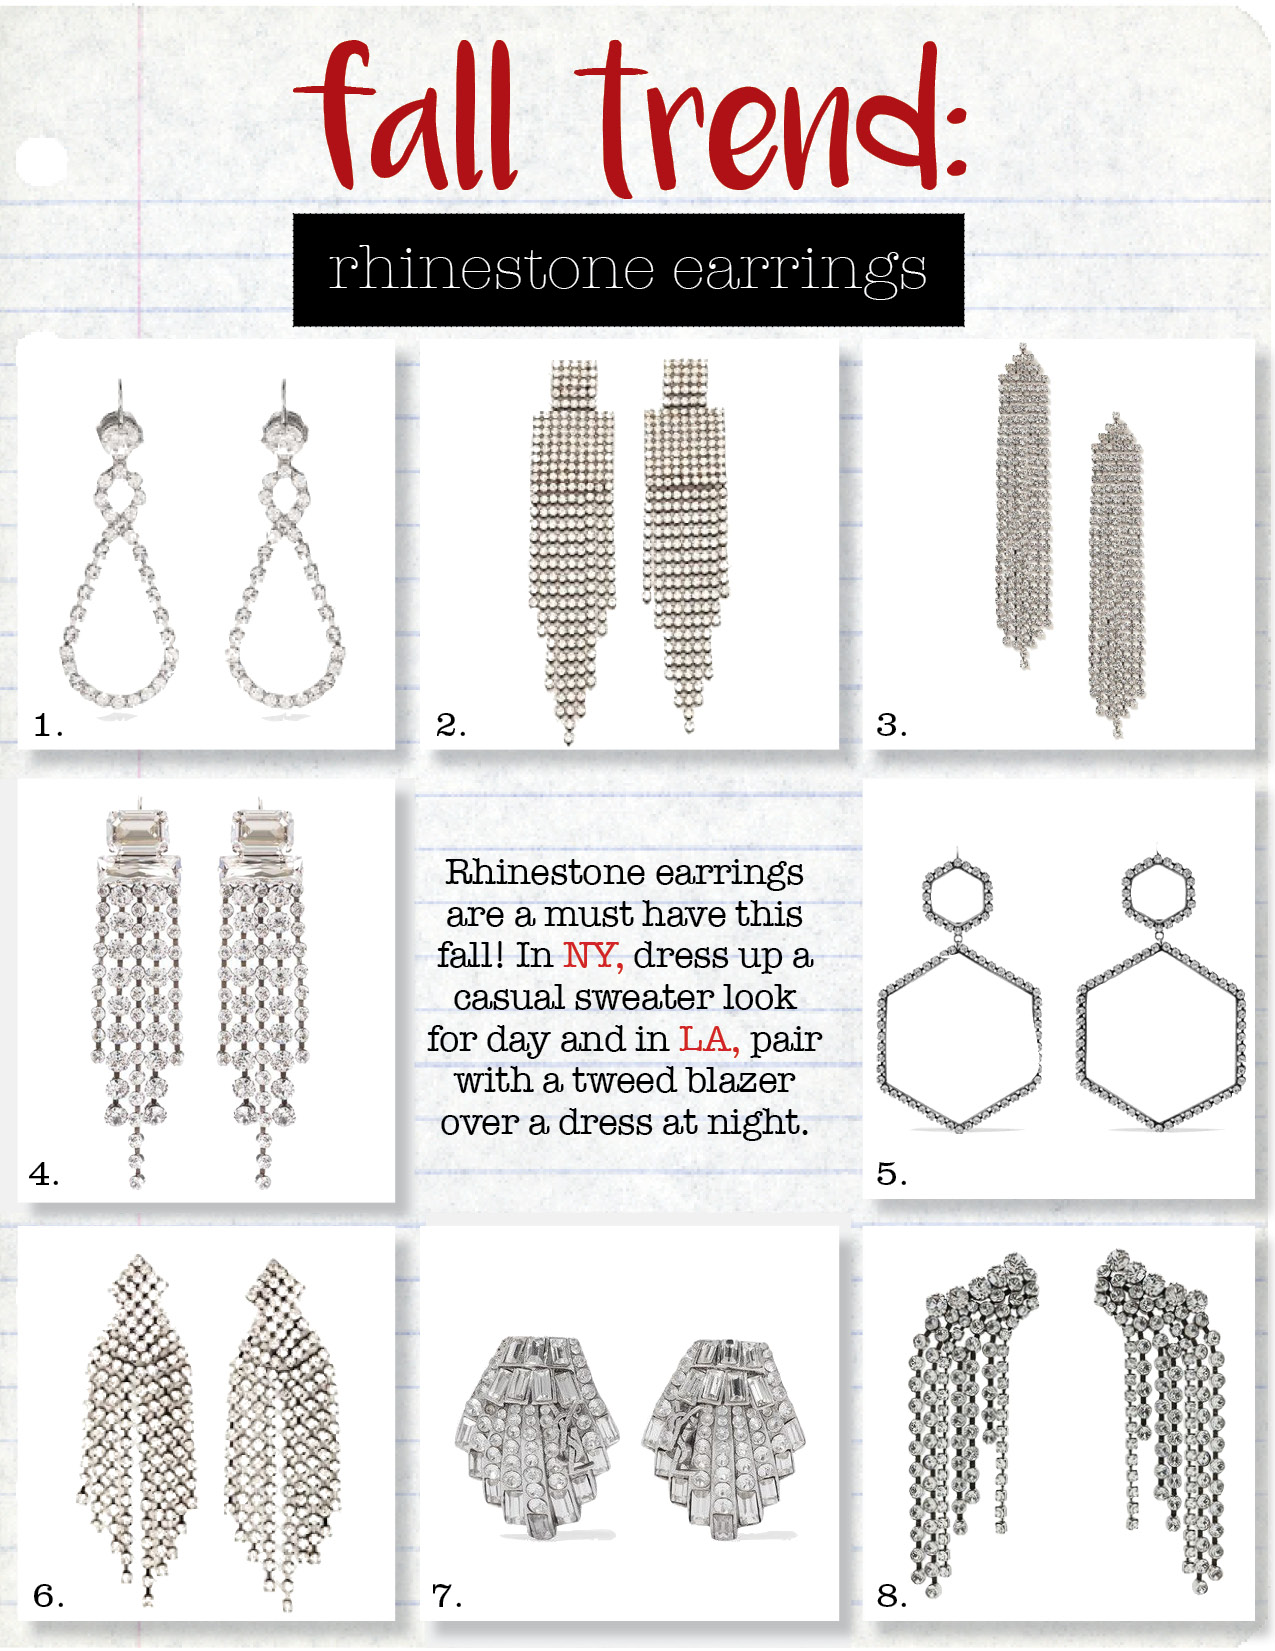 1. miu miu crystal-encrusted drop earrings, $277,  matchesfashion.com  2. jennifer behr lorraine earrings, $425,  shopbop.com  3. topshop cupchain drape drop earrings, $22,  topshop.com  4. isabel marant crystal-embellished earrings, $485,  mytheresa.com  5. isabel marant silver-tone crystal earrings, $495,  net-a-porter.com  6. kenneth jay lane earrings, $100,  shopbop.com  7. saint laurent silver-tone crystal clip earrings, $895,  net-a-porter.com  8. isabel marant crystal cascade earrings, $485,  fwrd.com